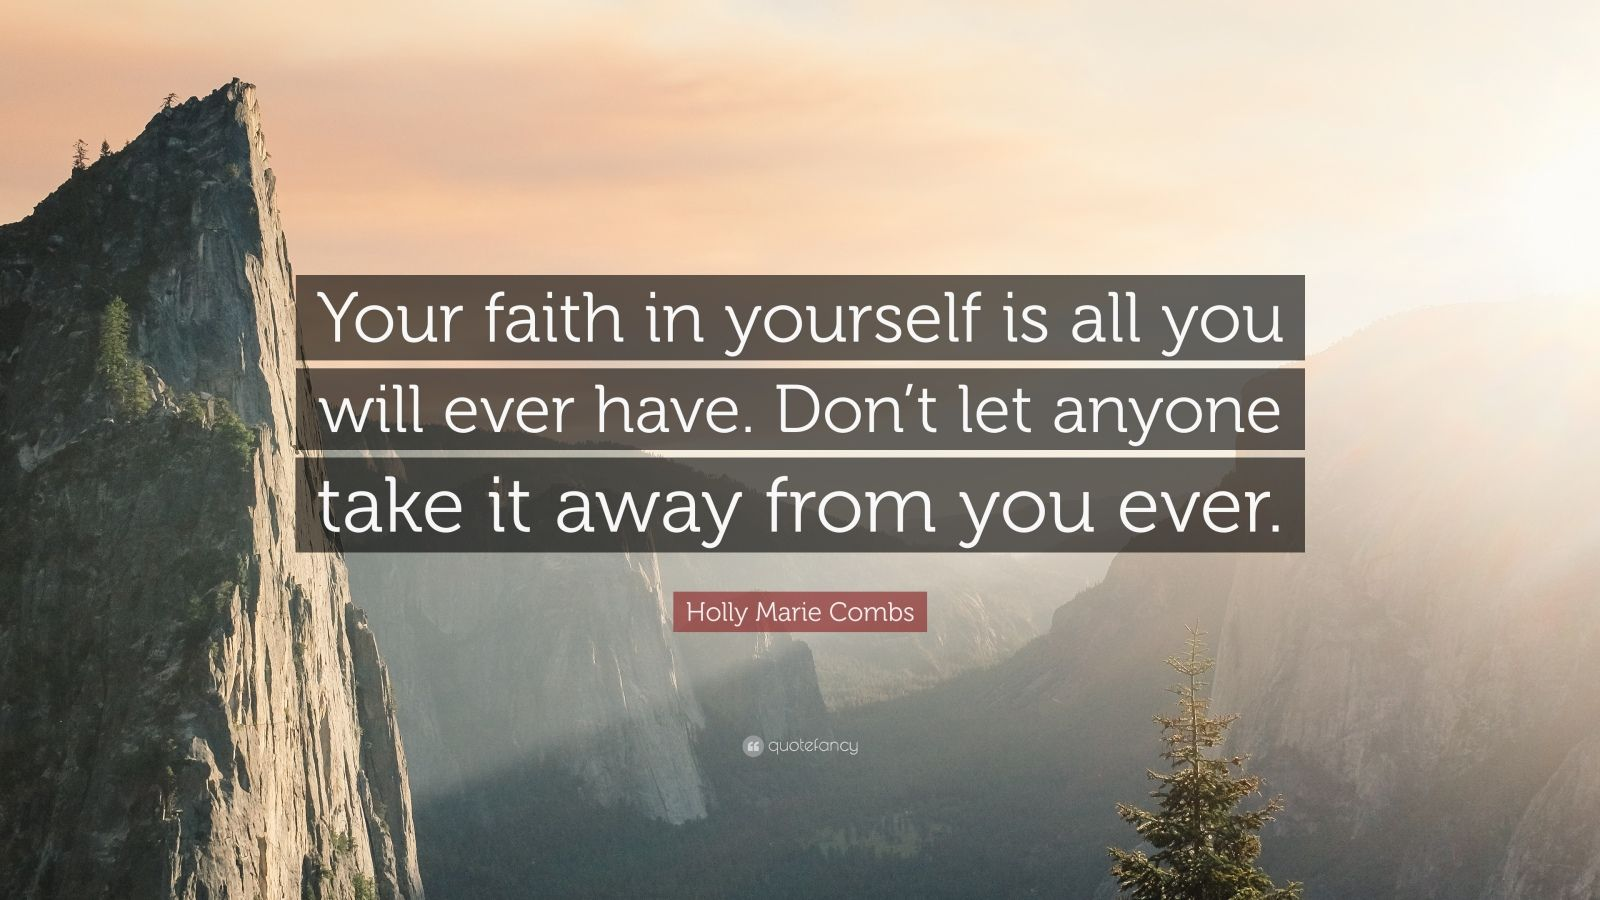 have faith in yourself all